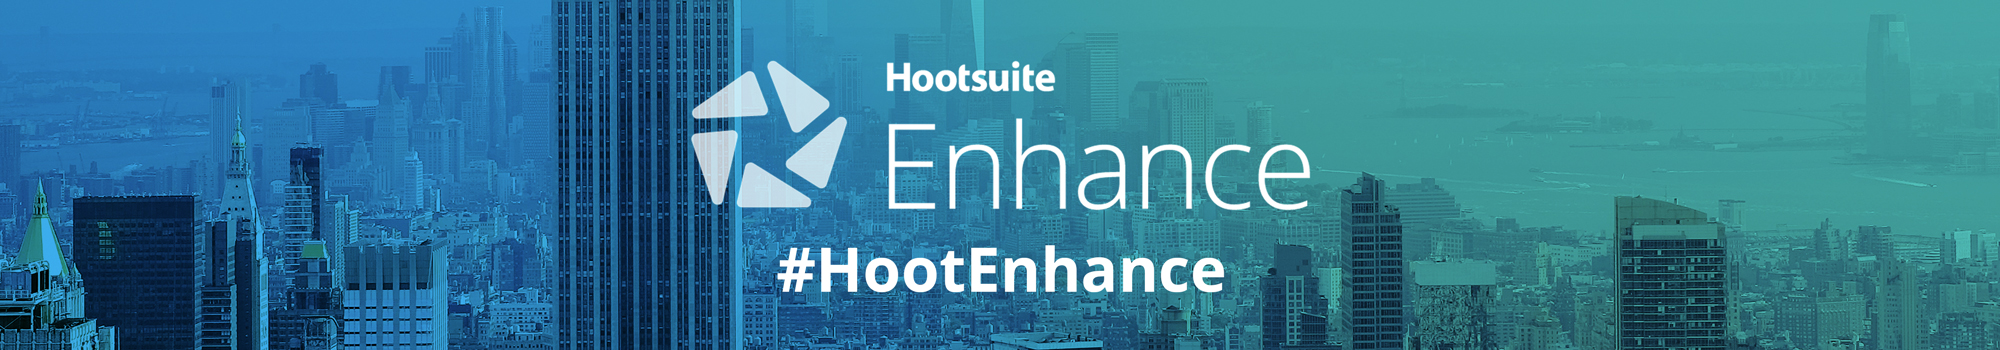 01-que-es-hootsuite-enhance